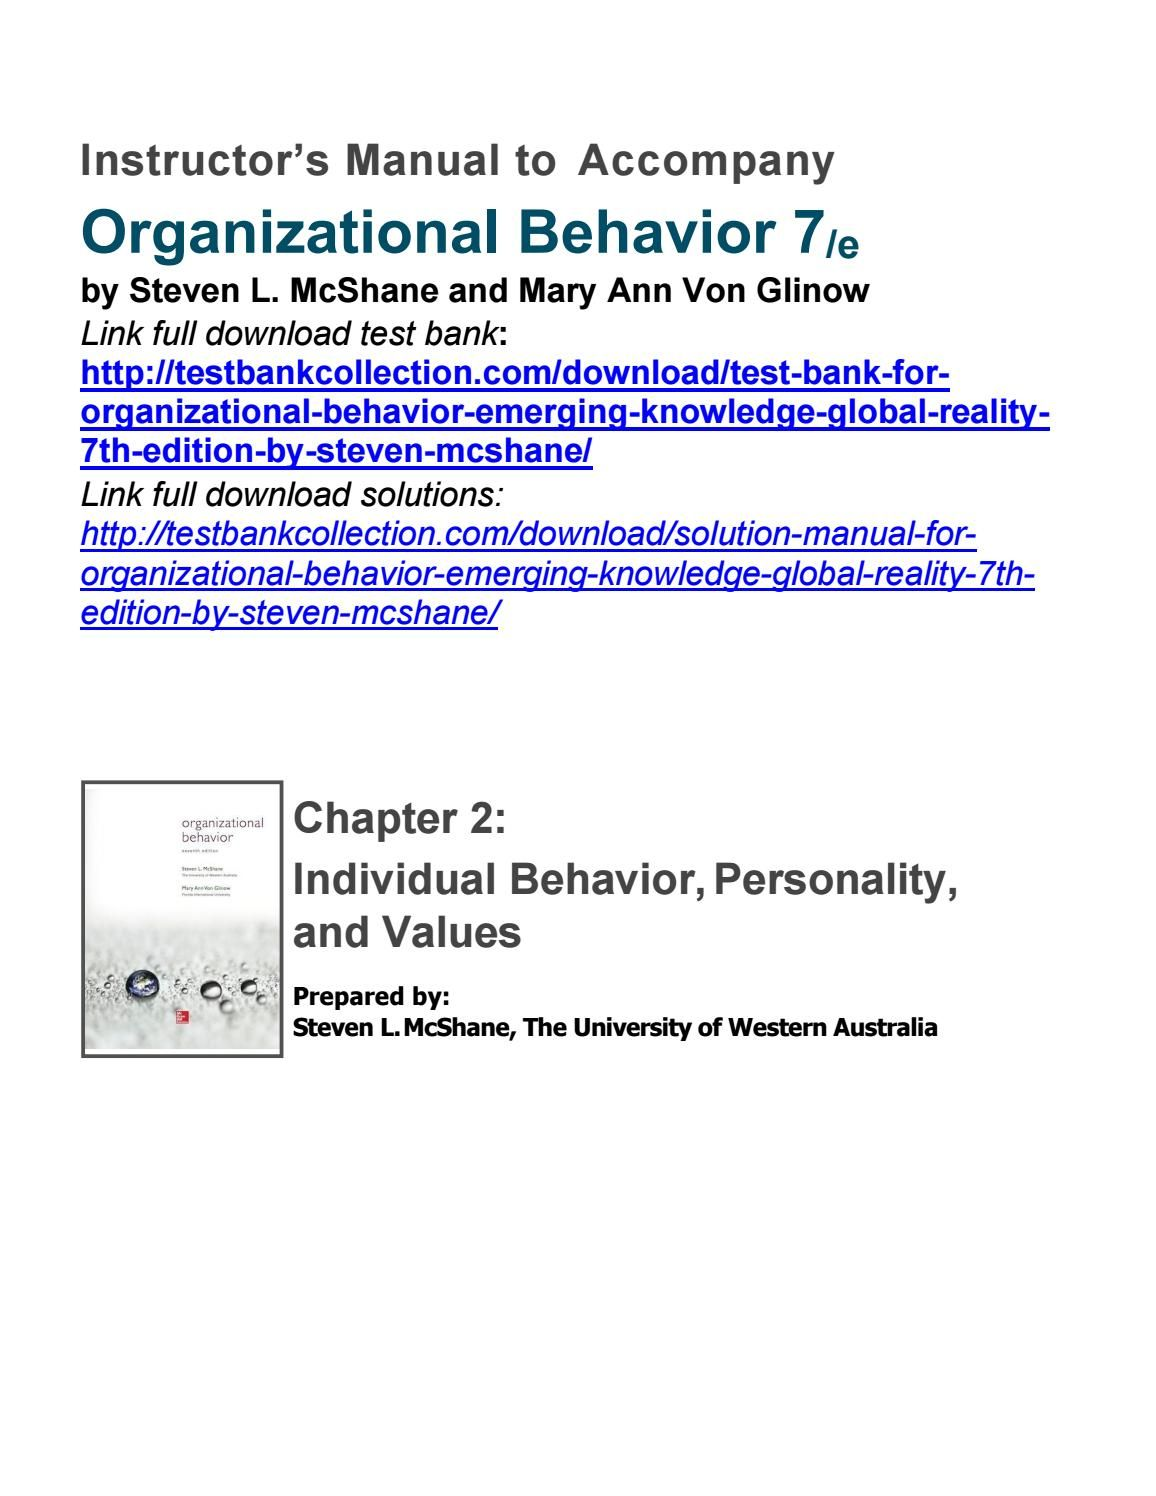 organizational behavior emerging knowledge global reality 7th rh pinterest com Importance of Organizational Behavior Importance of Organizational Behavior